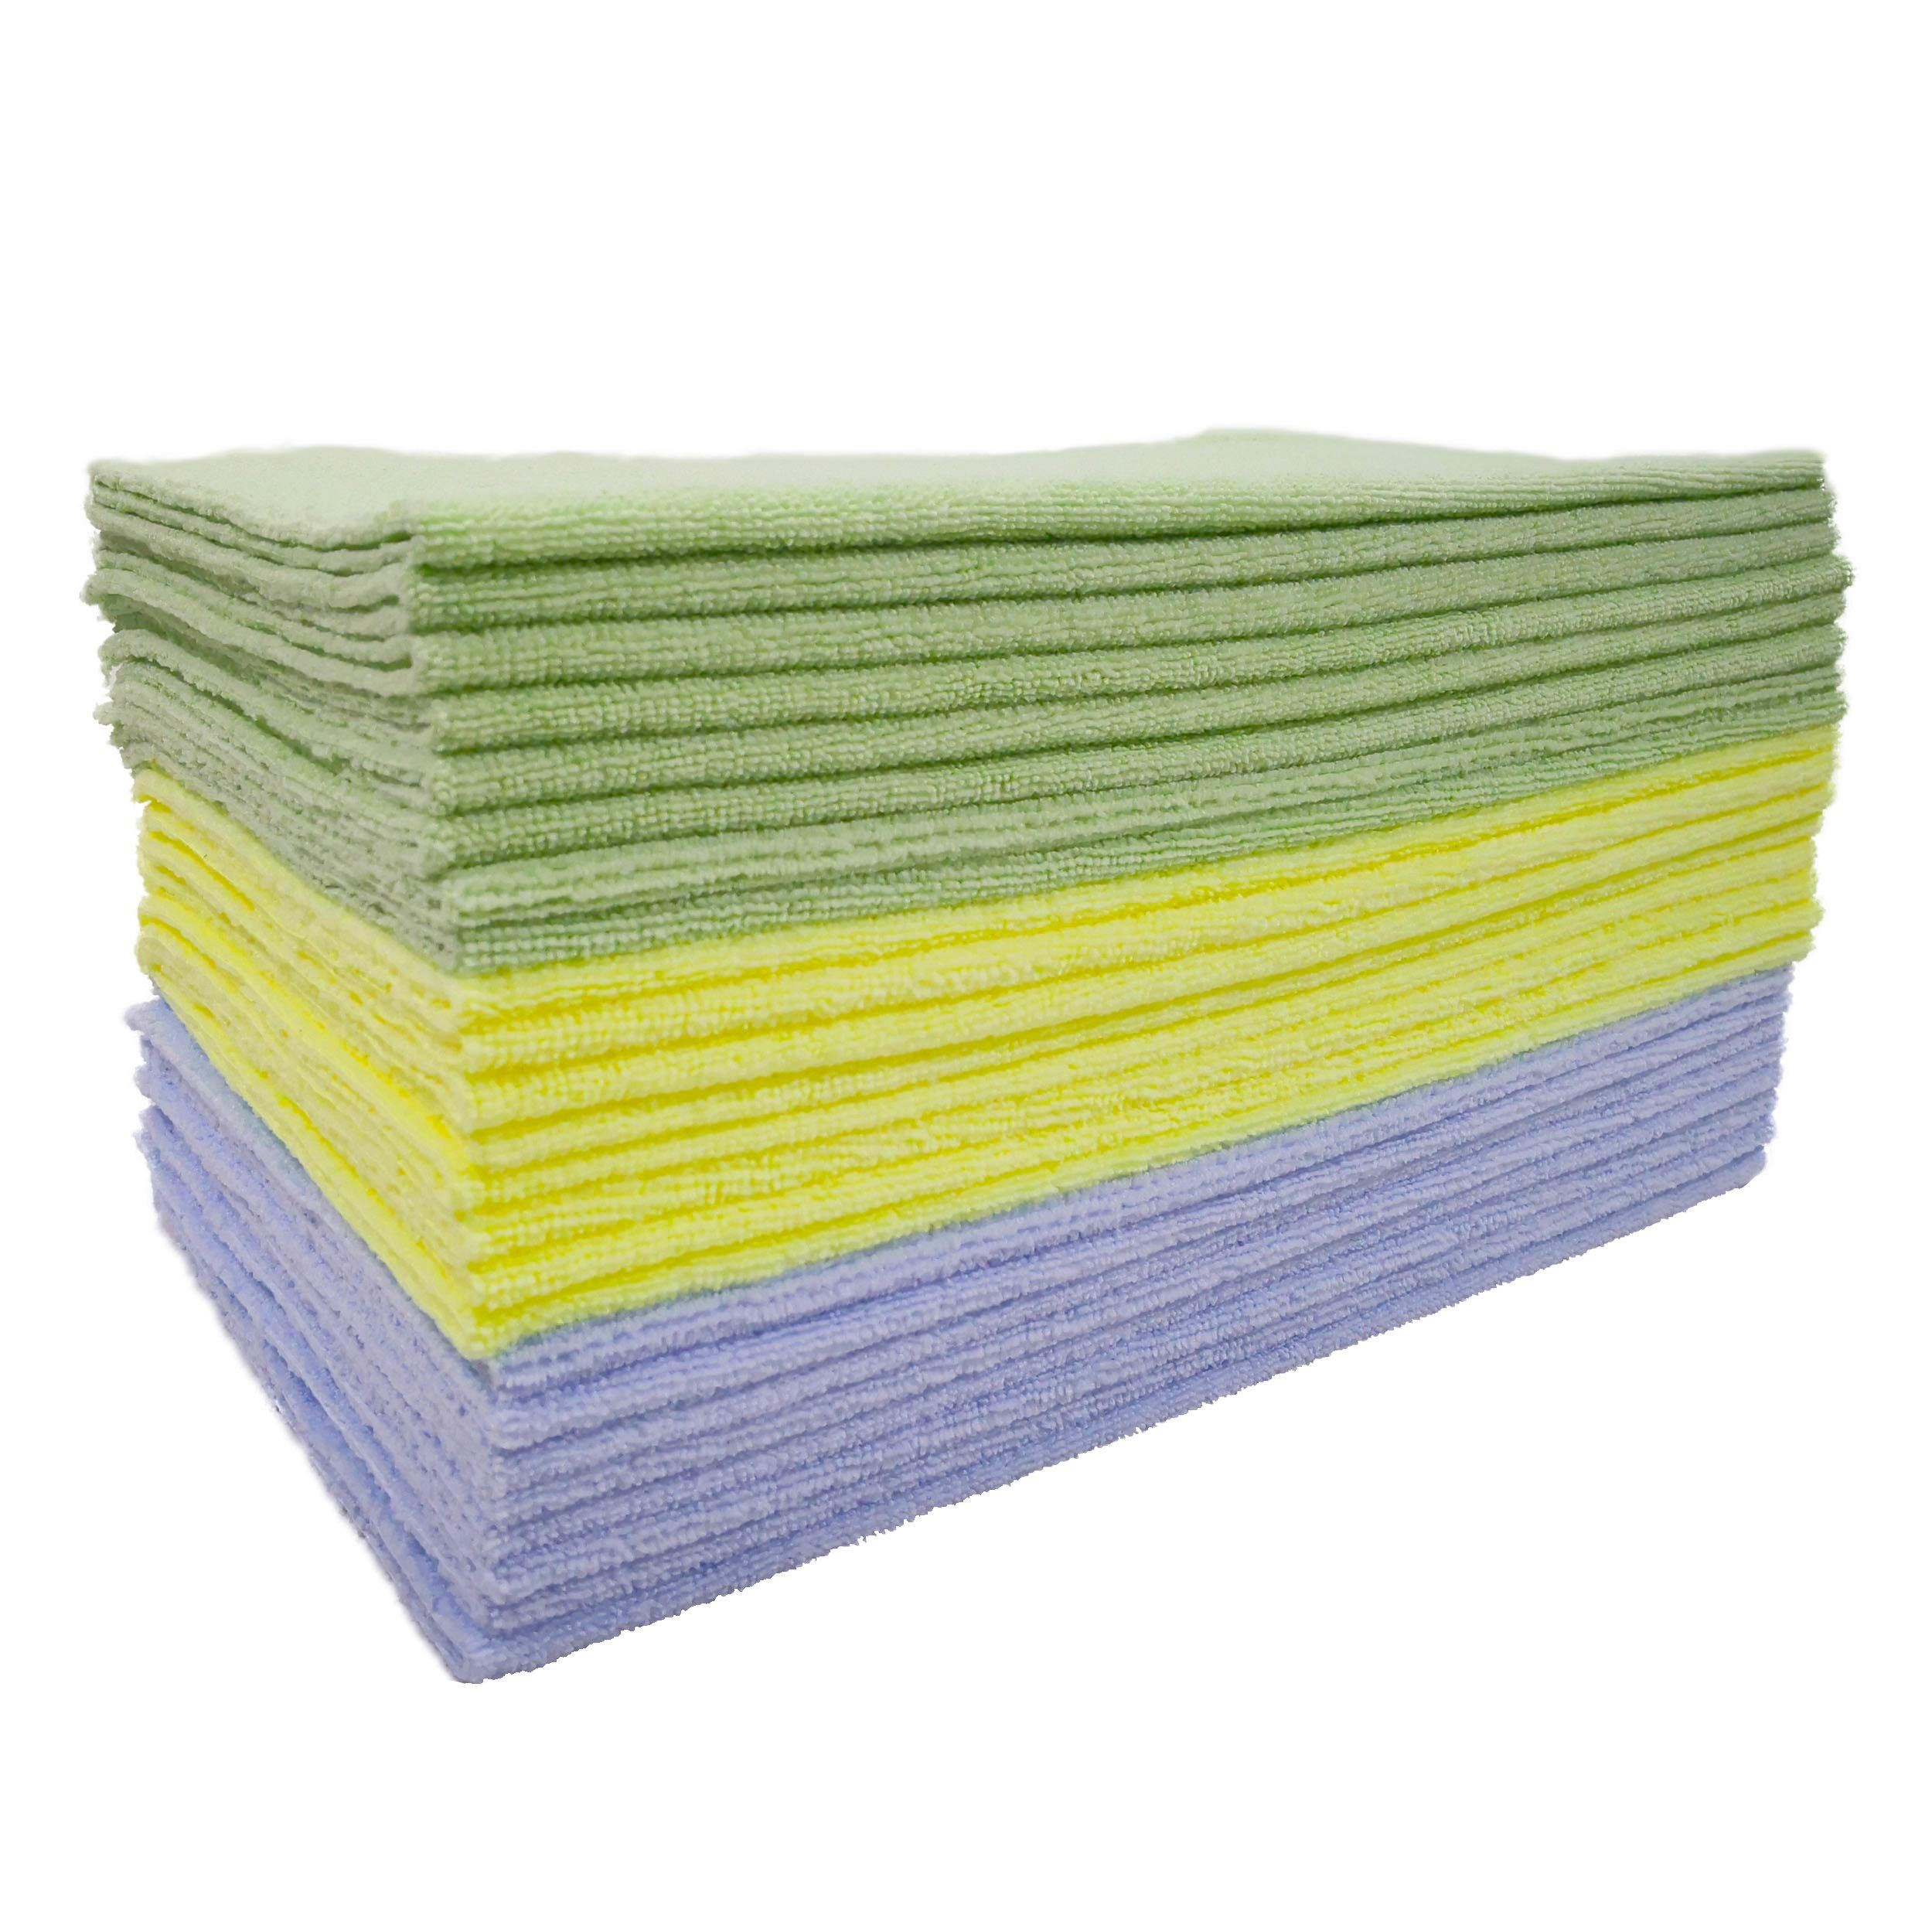 Polyte Microfiber Cleaning Towel Ultrasonic Cut Edgeless (16x16, 24 Pack, Premium, Light Blue,Green,Yellow)